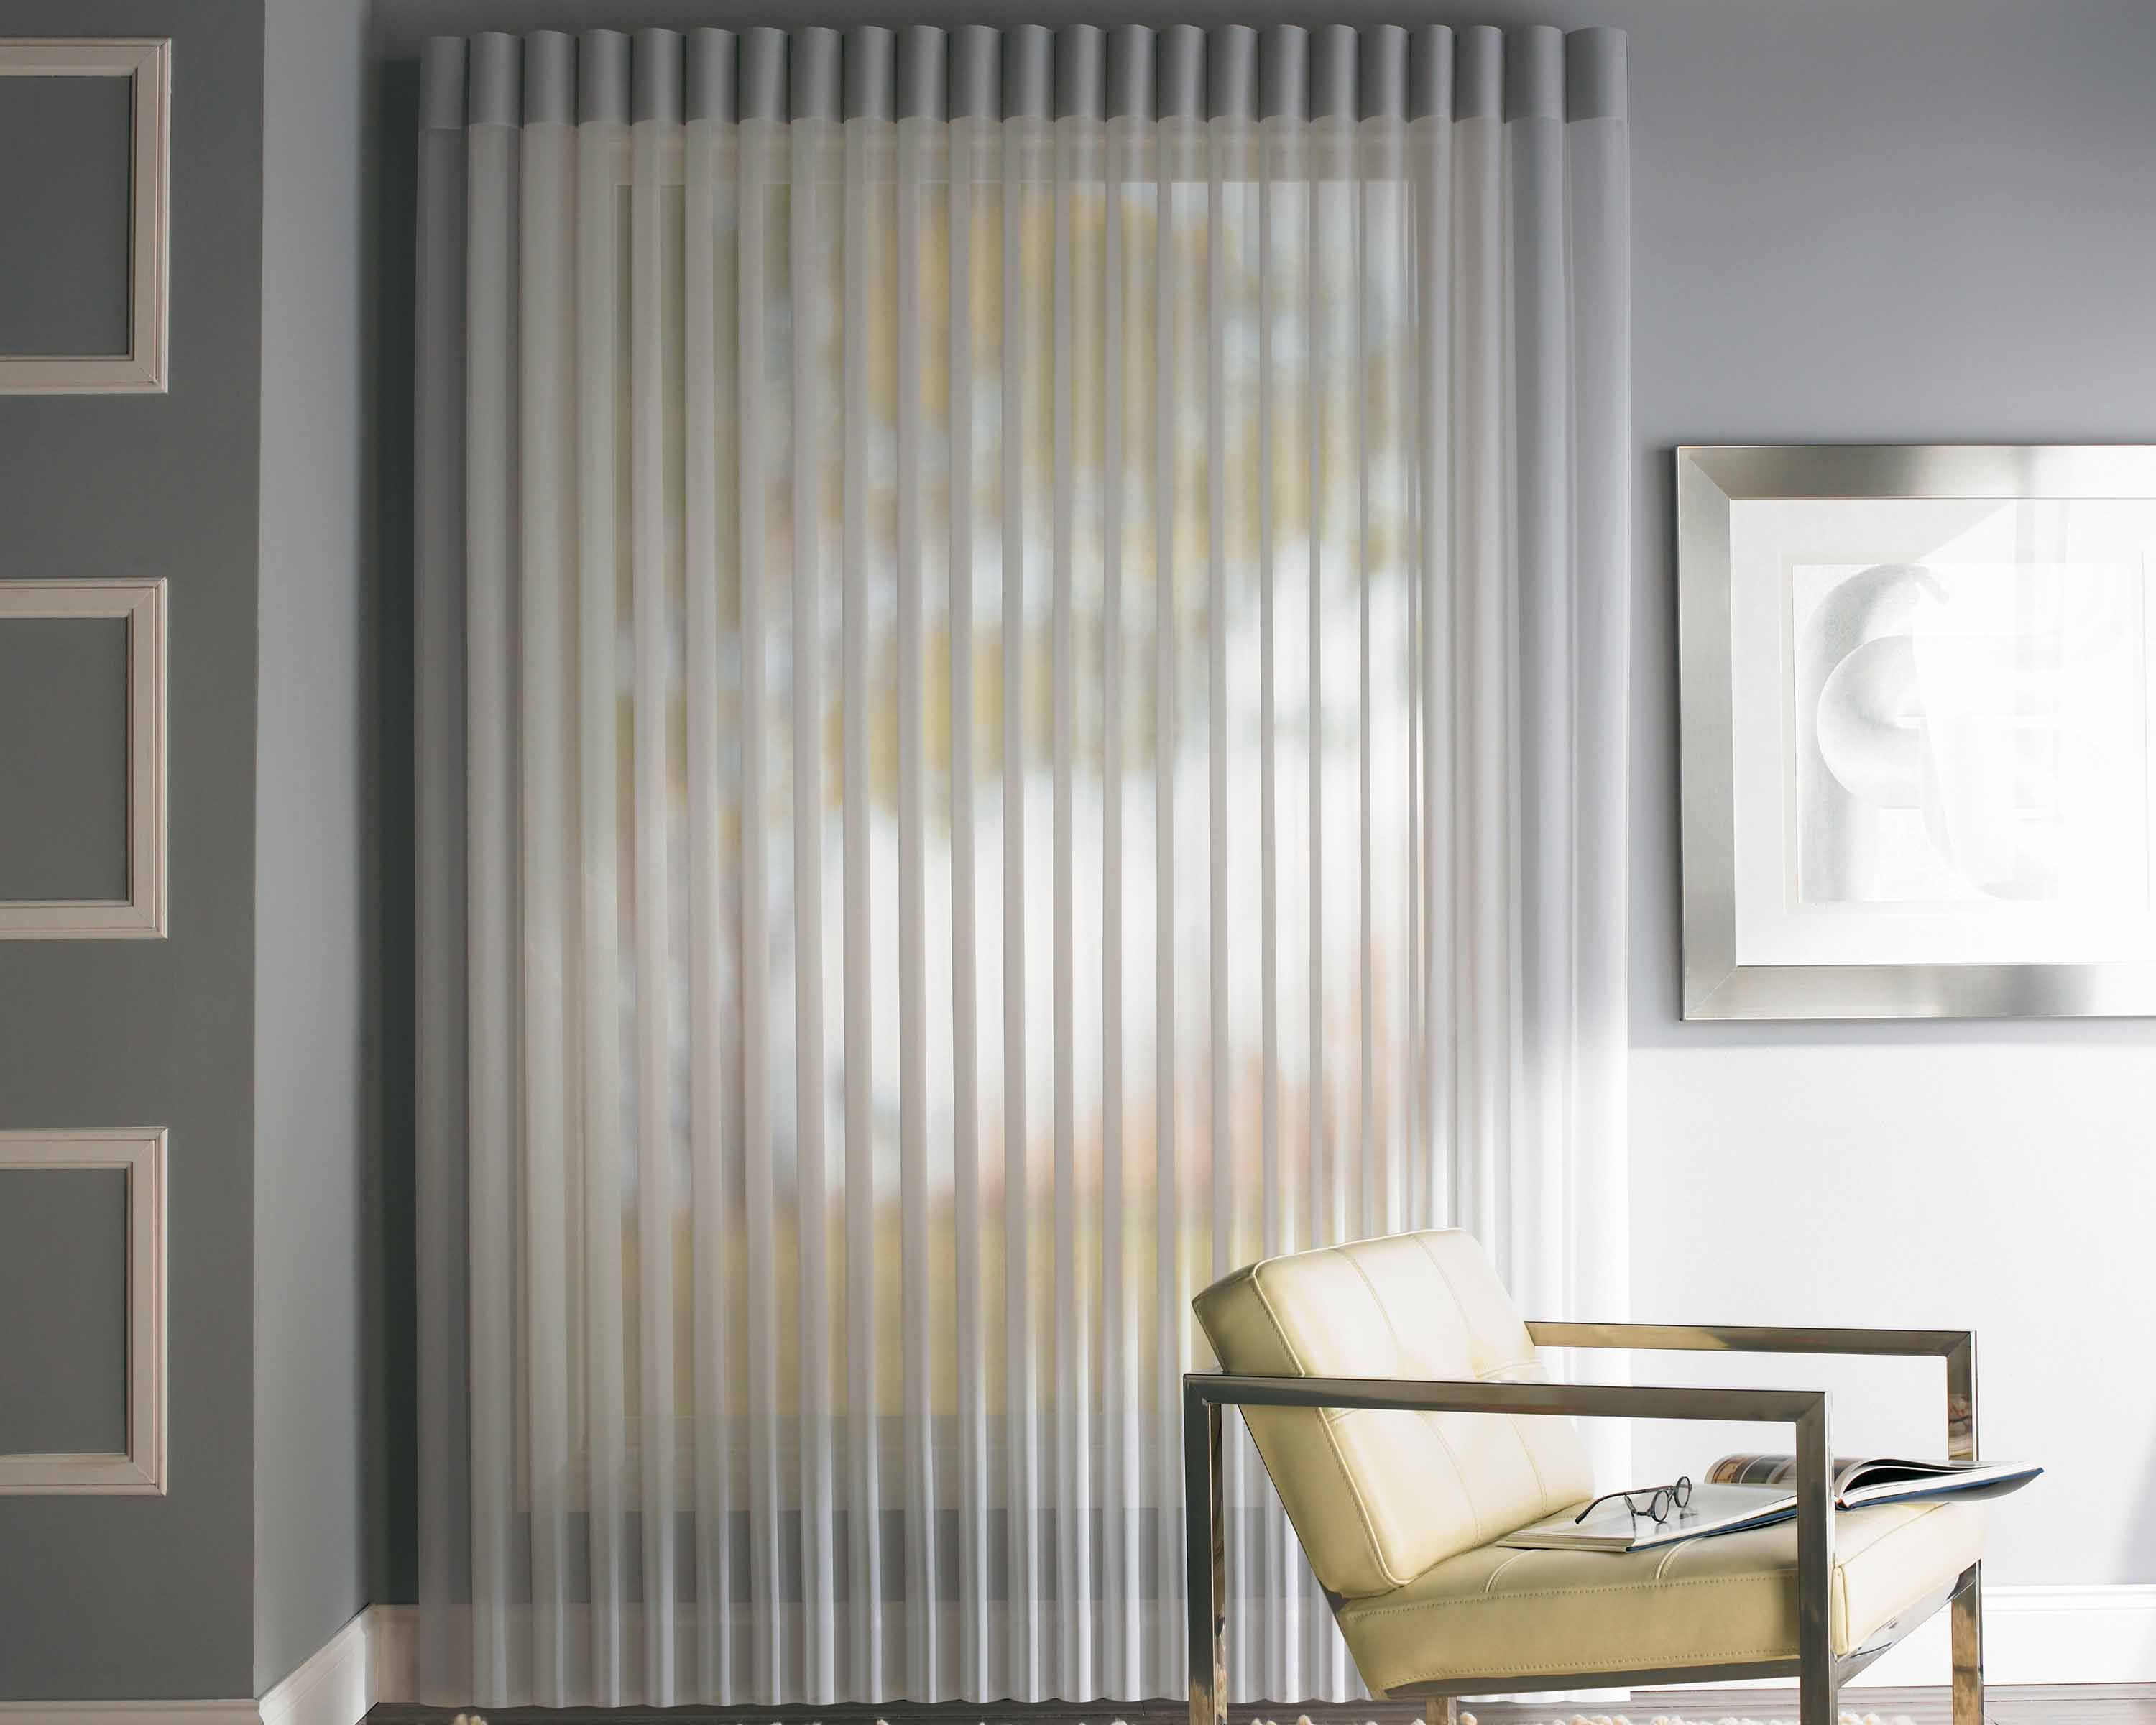 Luminette Privacy Sheers A Visually Striking Alternative To Sheer Curtains Curtains Living Room Curtains Headboard Curtains